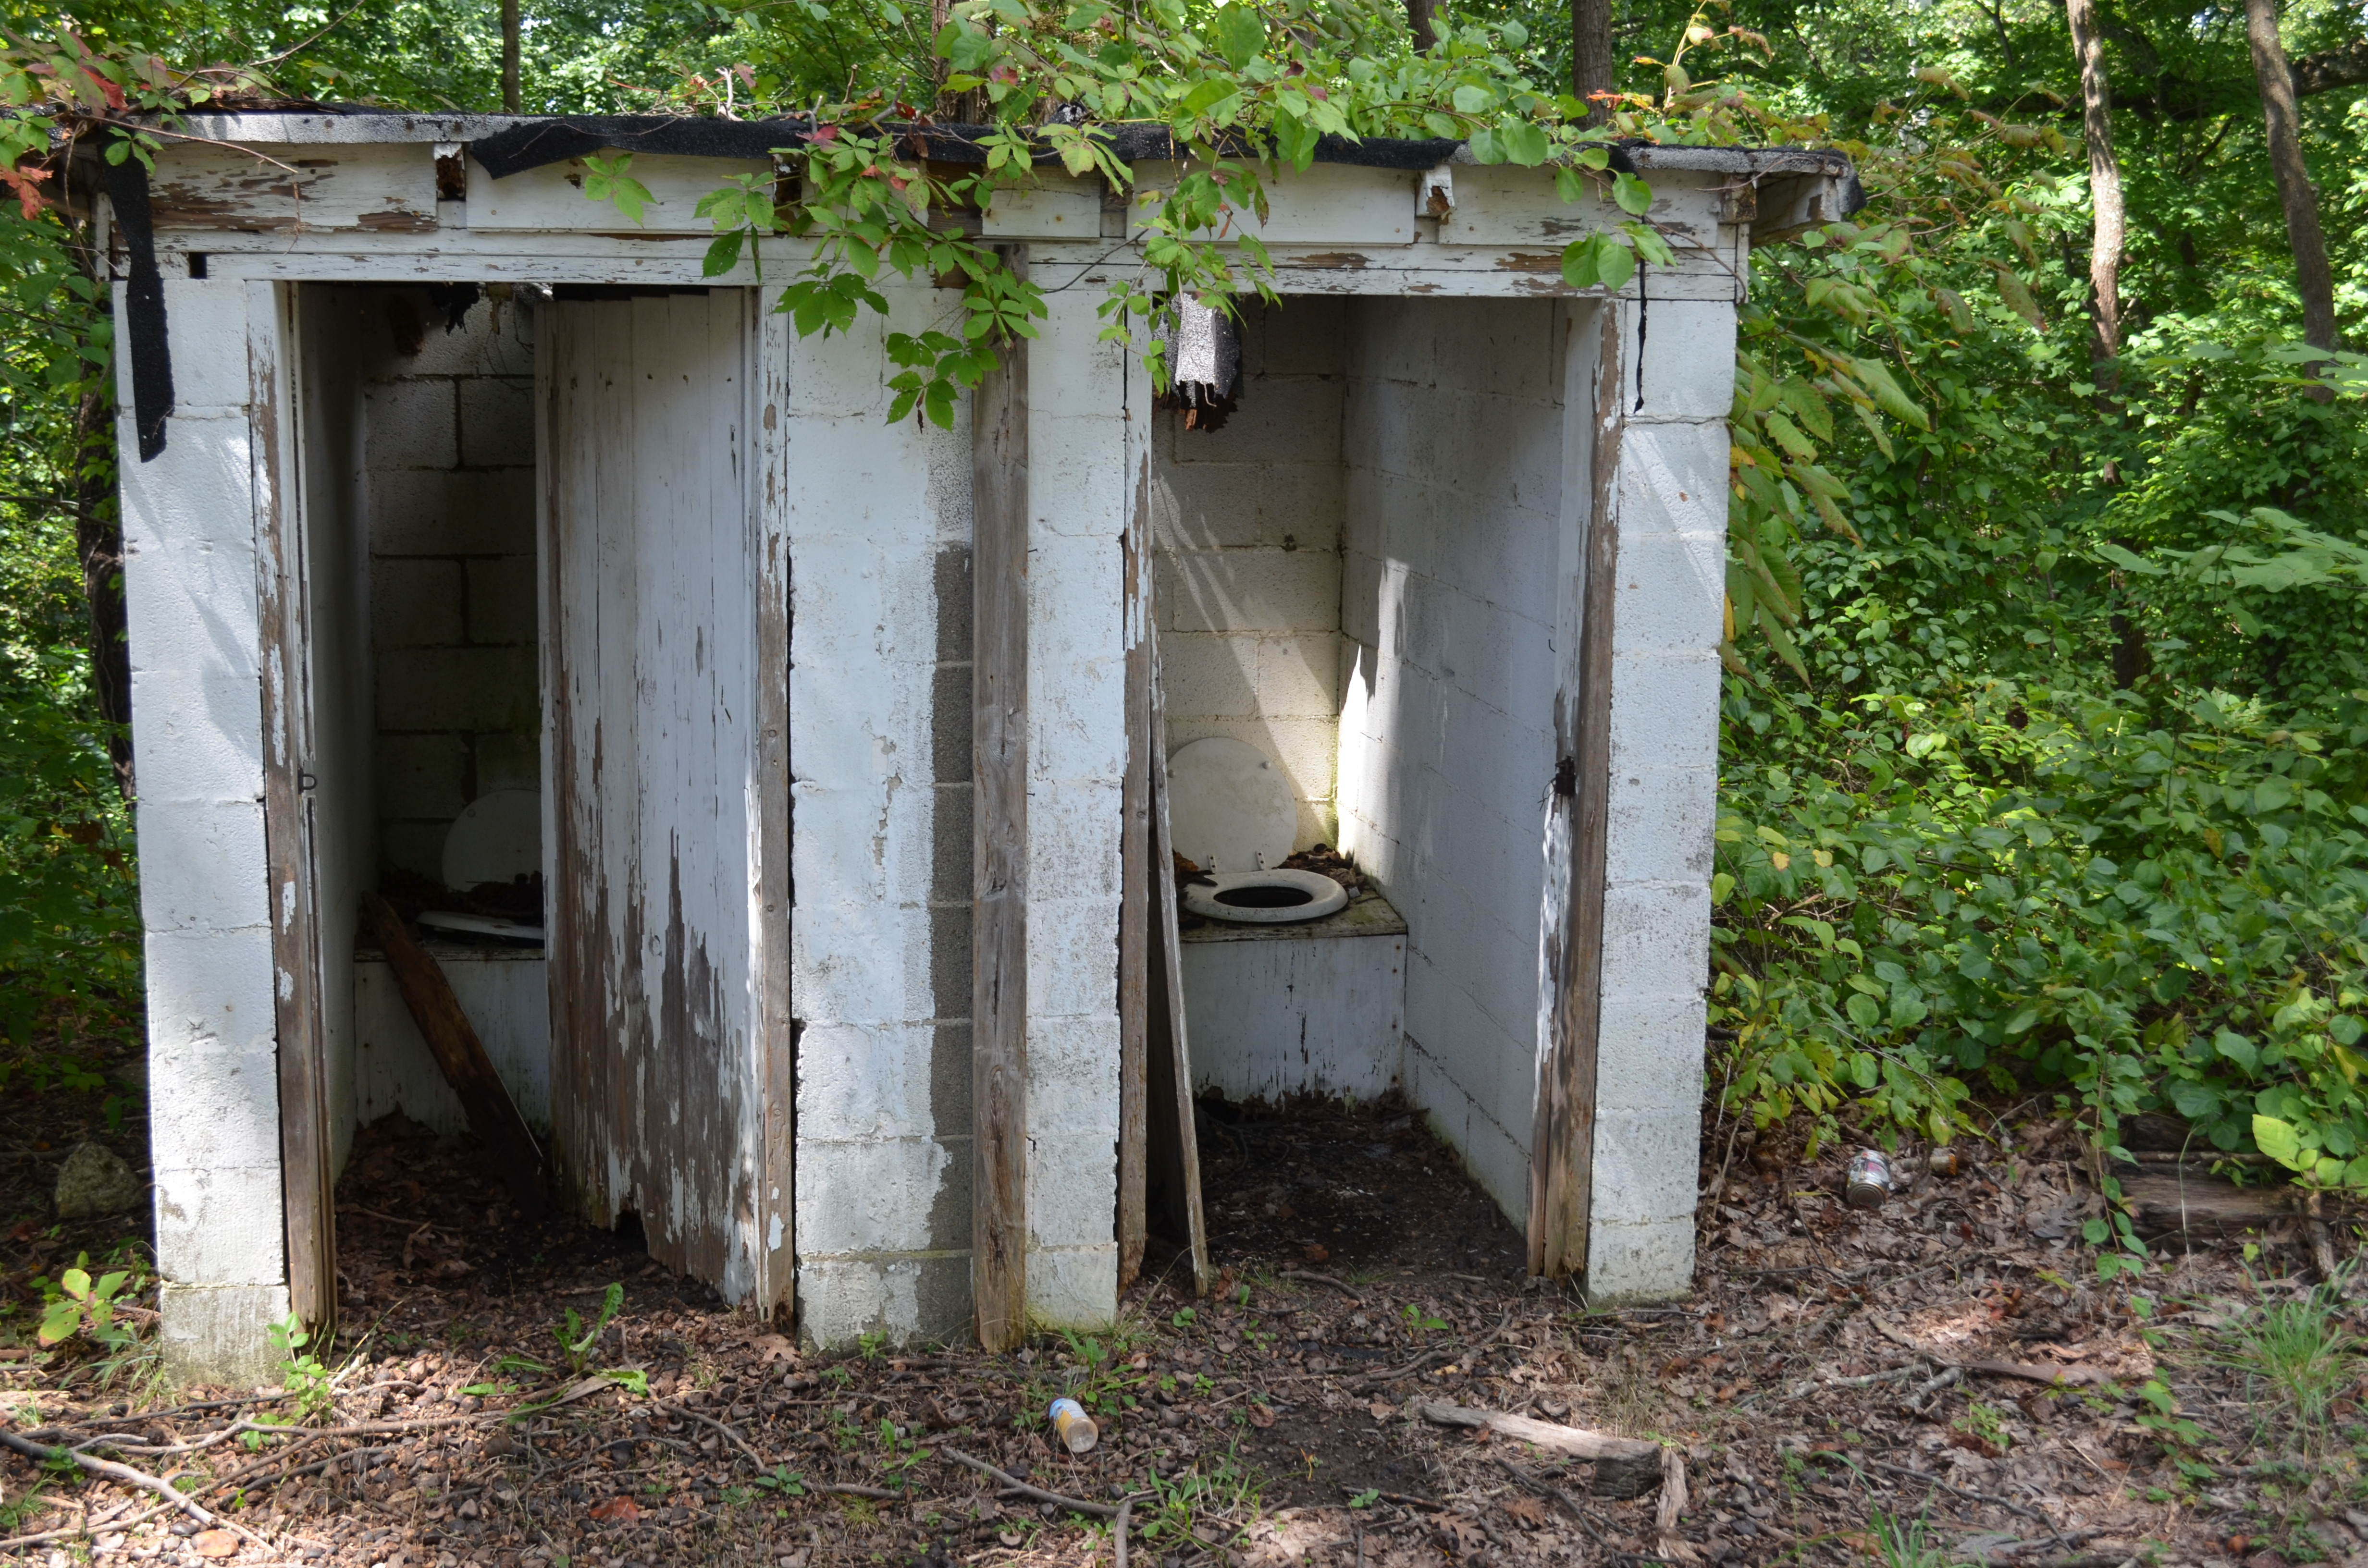 The structure includes several original buildings, such as these outhouses